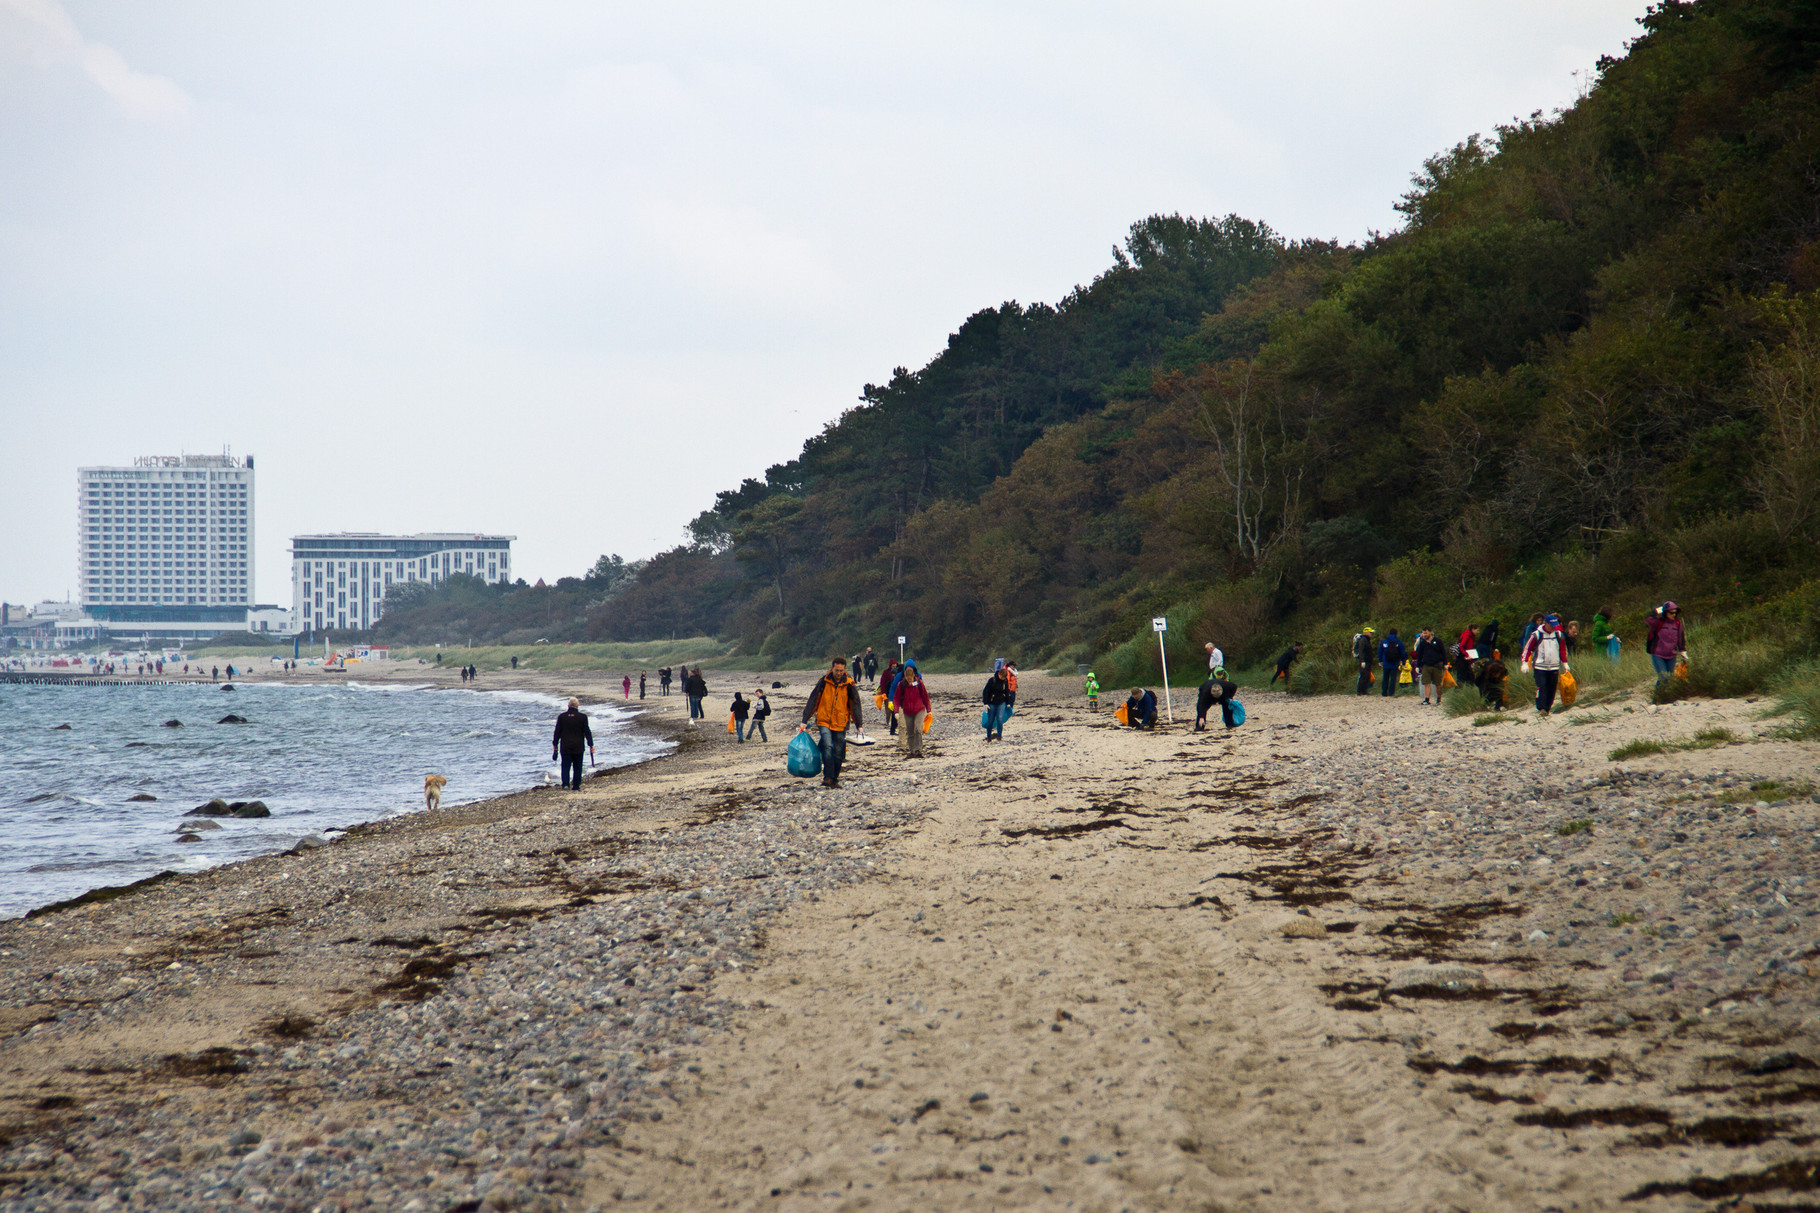 International Coastal Cleanup Day 2015 in Warnemünde